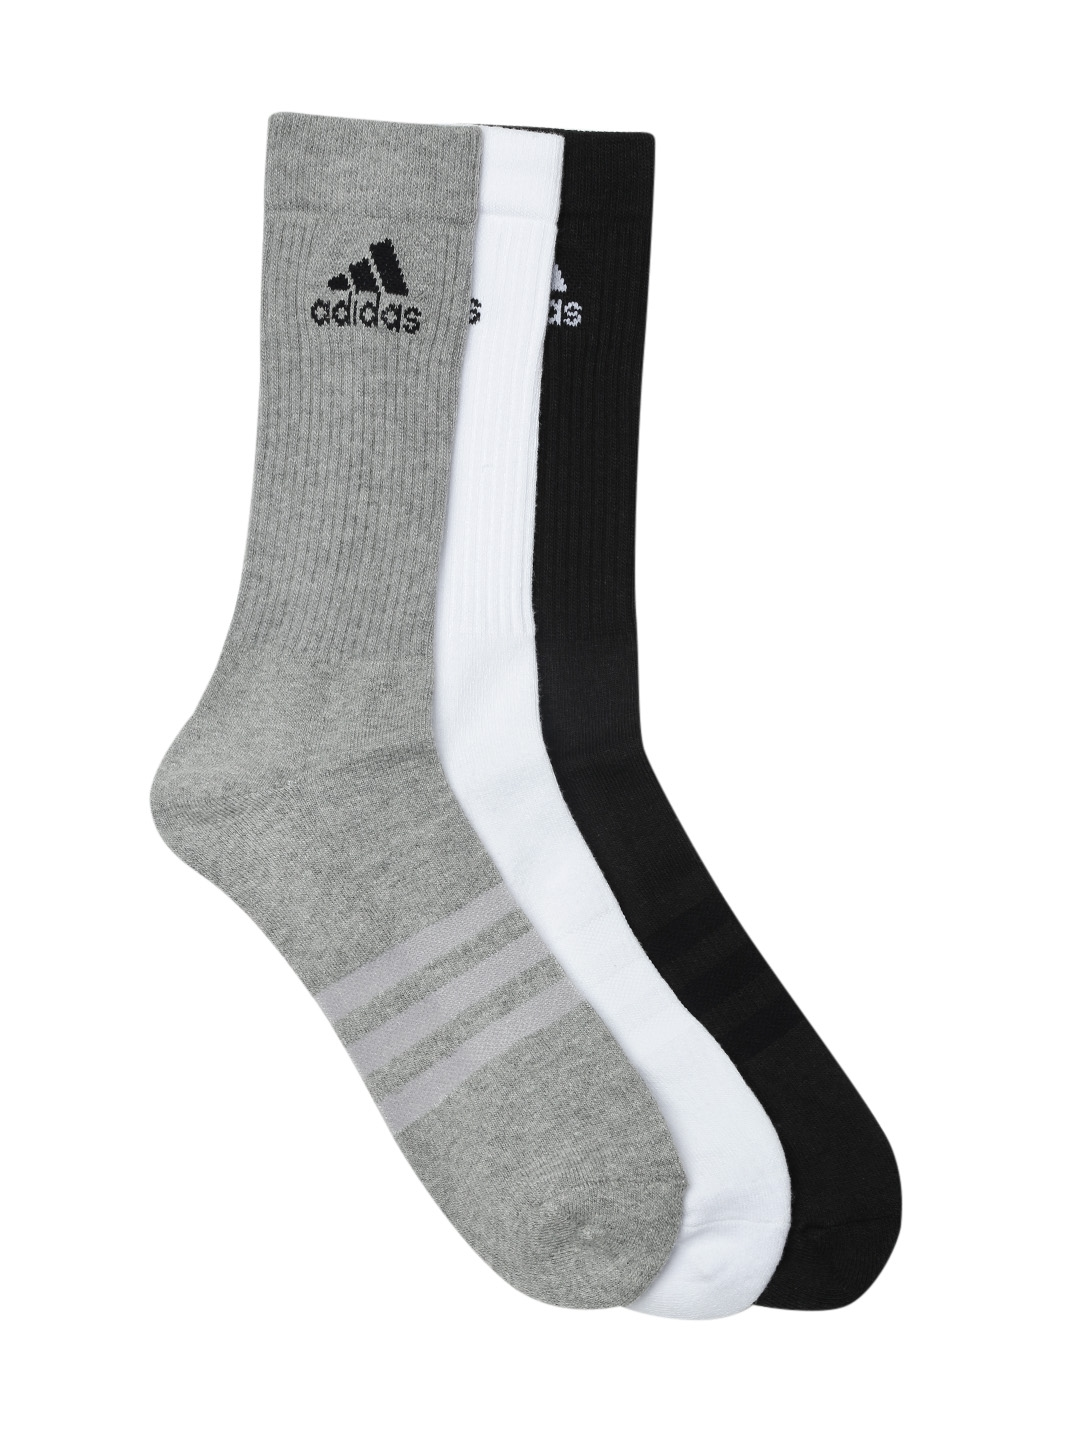 on sale 5e249 ffaa4 ADIDAS Unisex Pack of 3 3S PER CR HC 3P Above Ankle-Length Socks